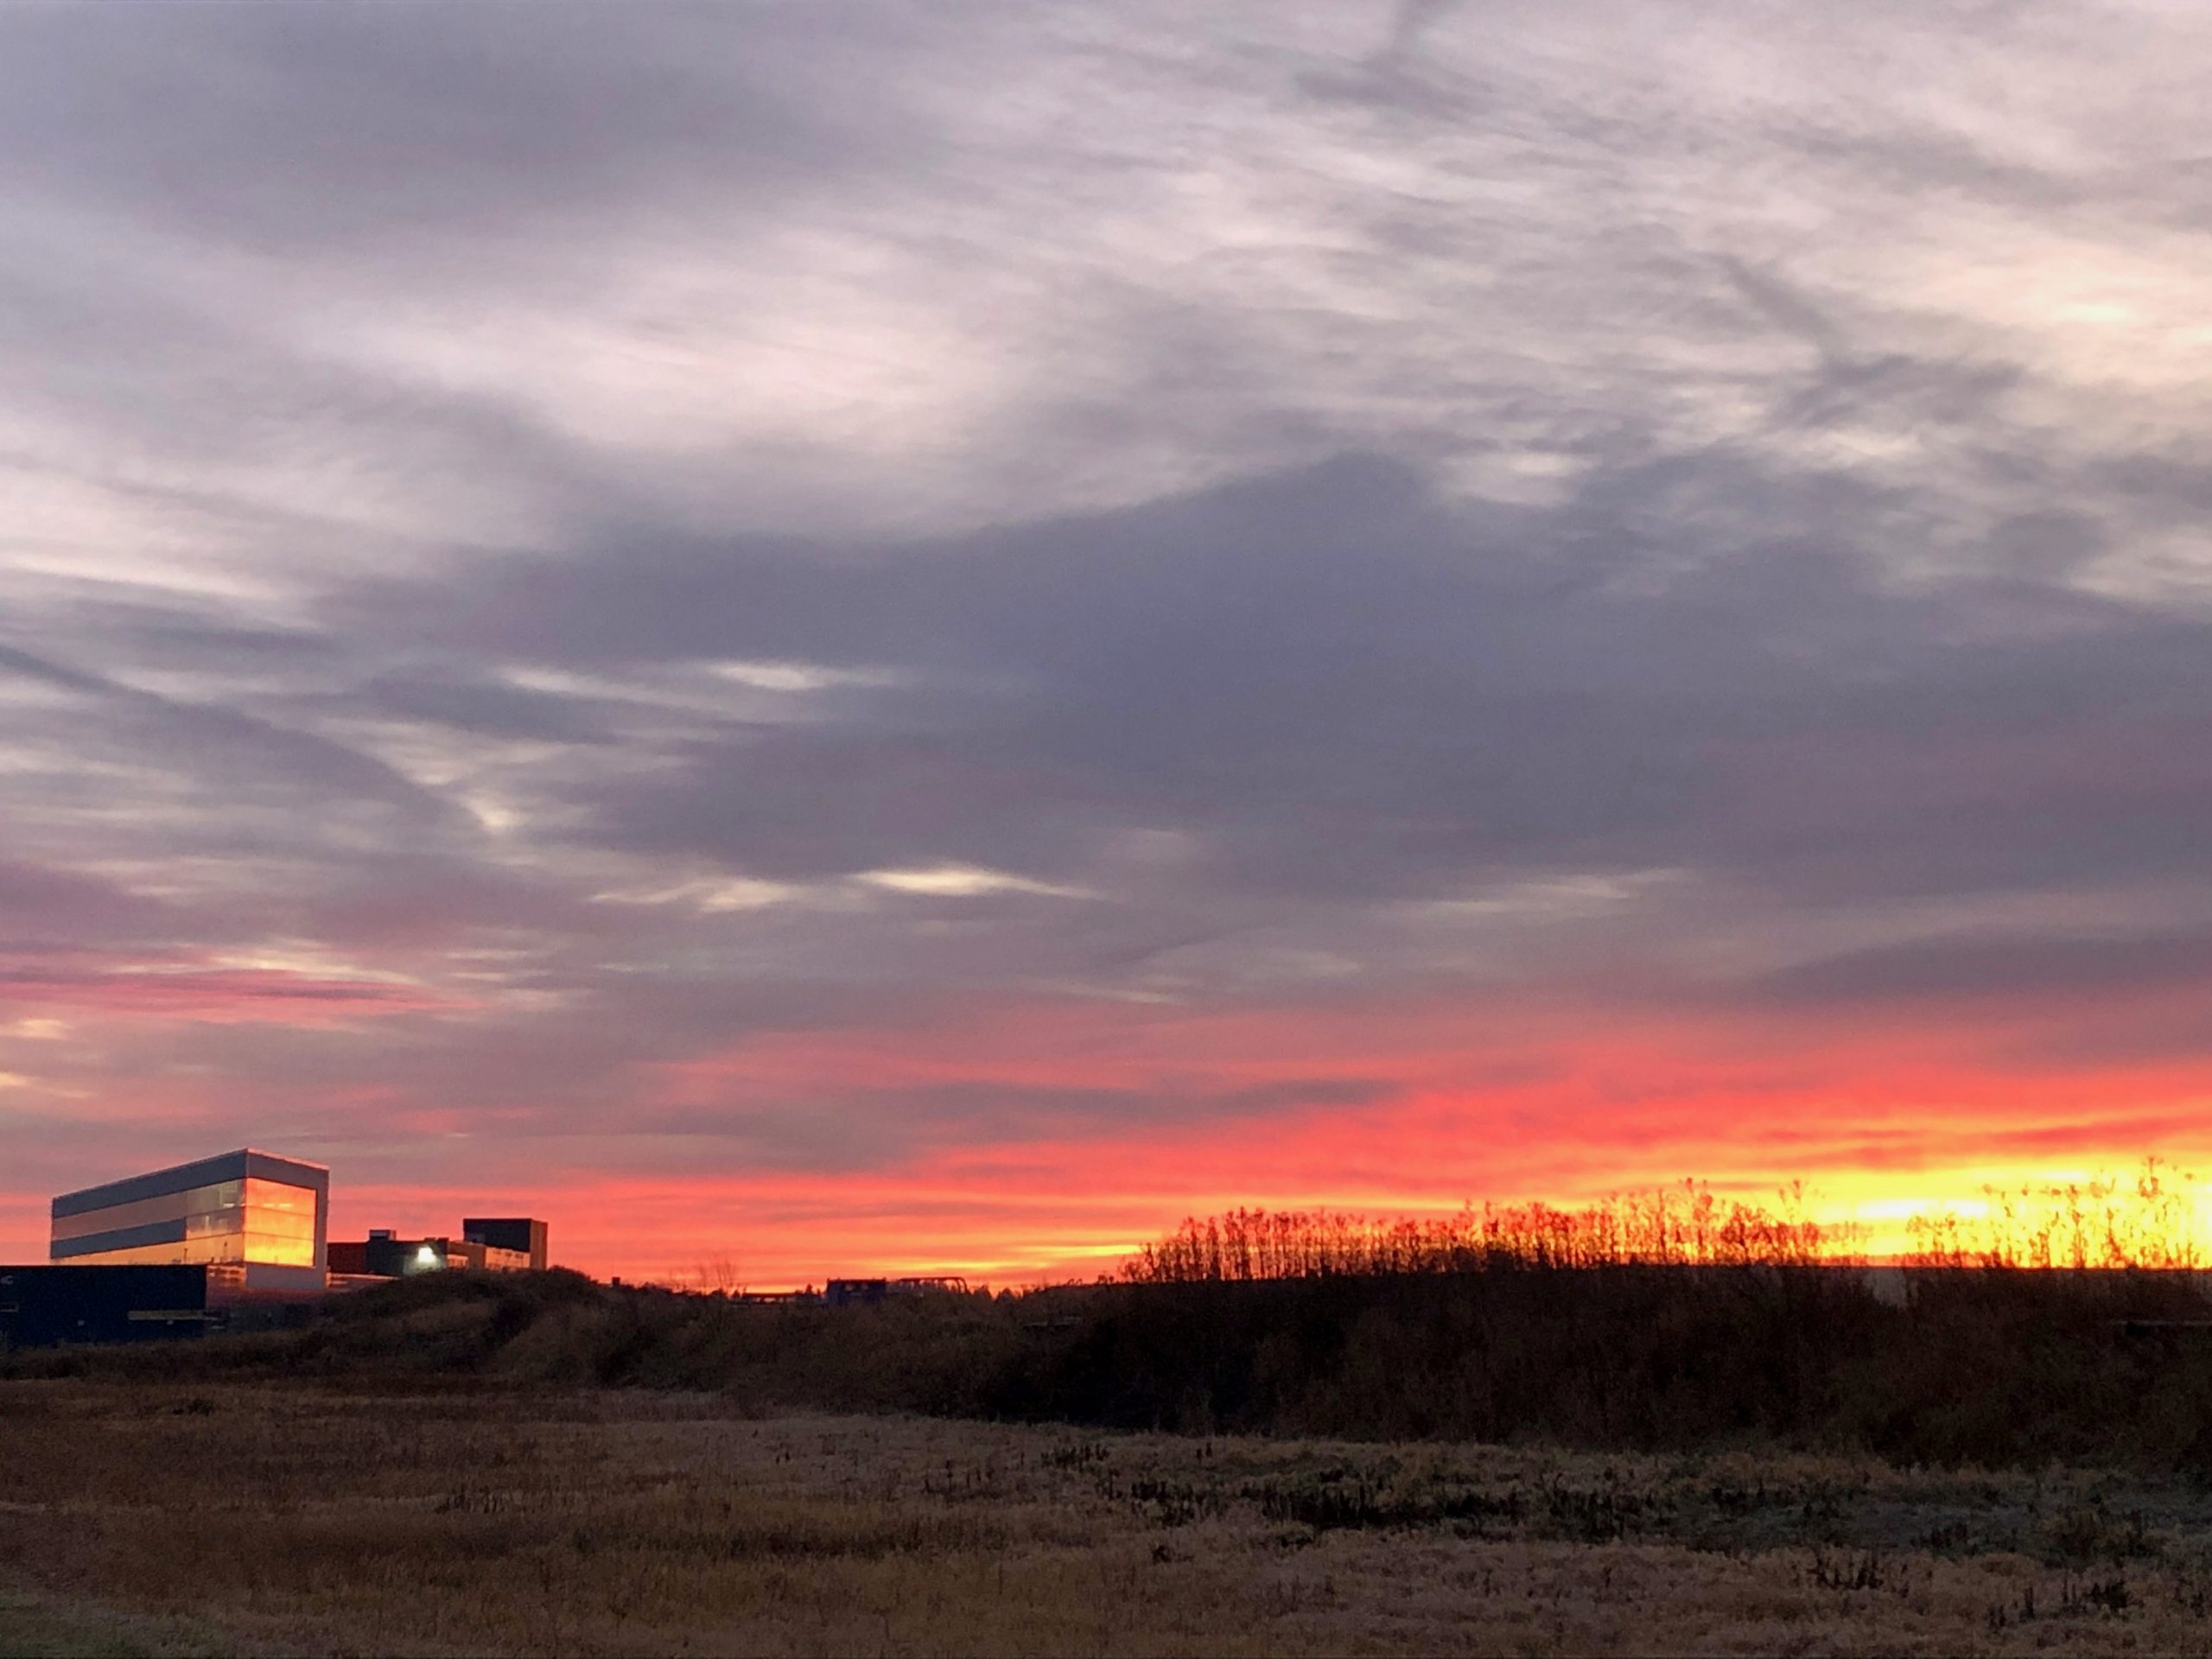 Good morning, sunshine. The light was just right to capture this Nov. 25 scene, in which the IARC OTE building seems to blend into the sky. nature, landscape, sunrise, cloud, sky Photo: Ron Kellett